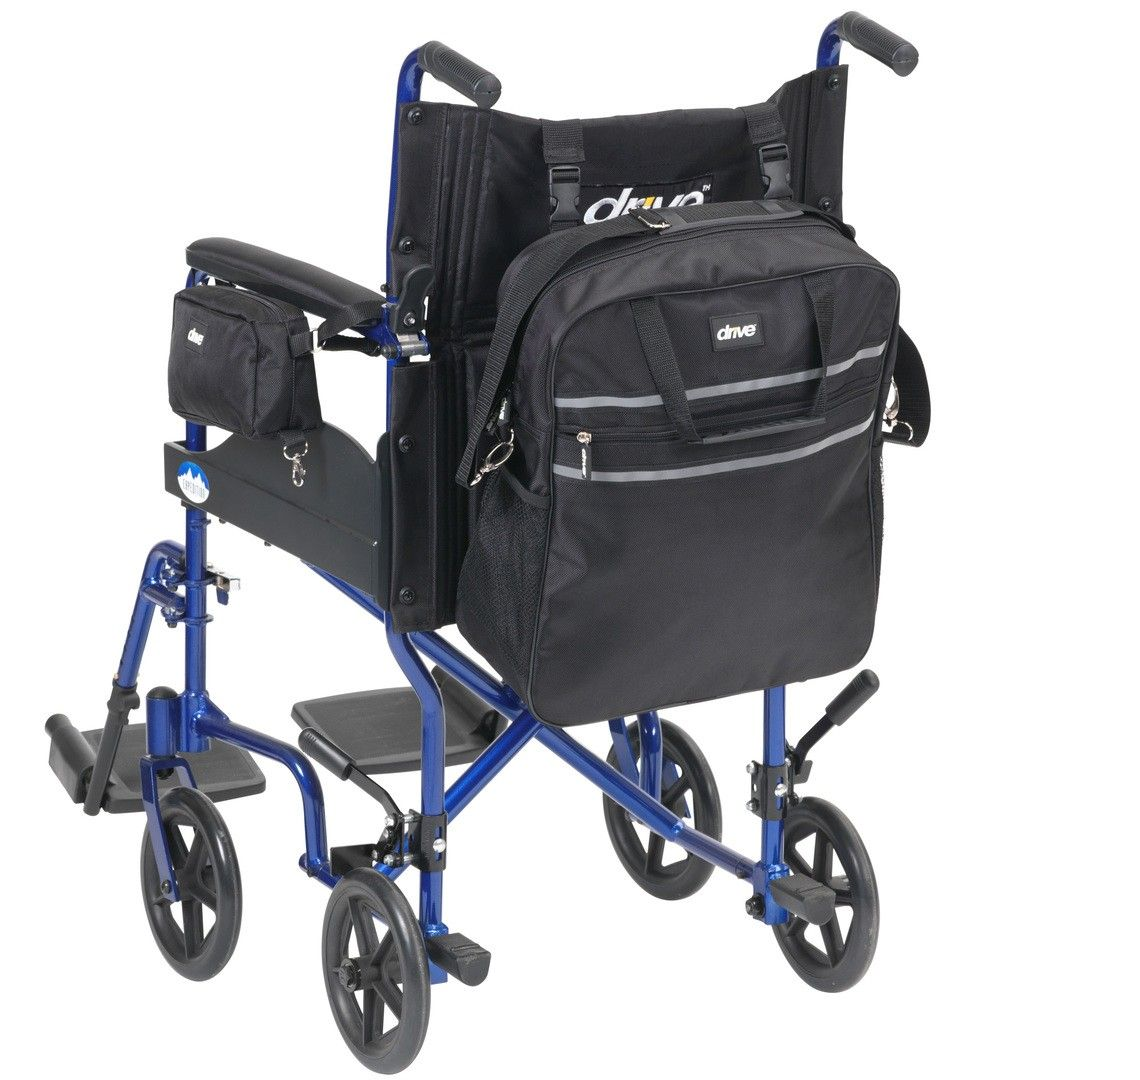 Wheelchair Bag Set showing the larger bag attached to the rear of the wheelchair